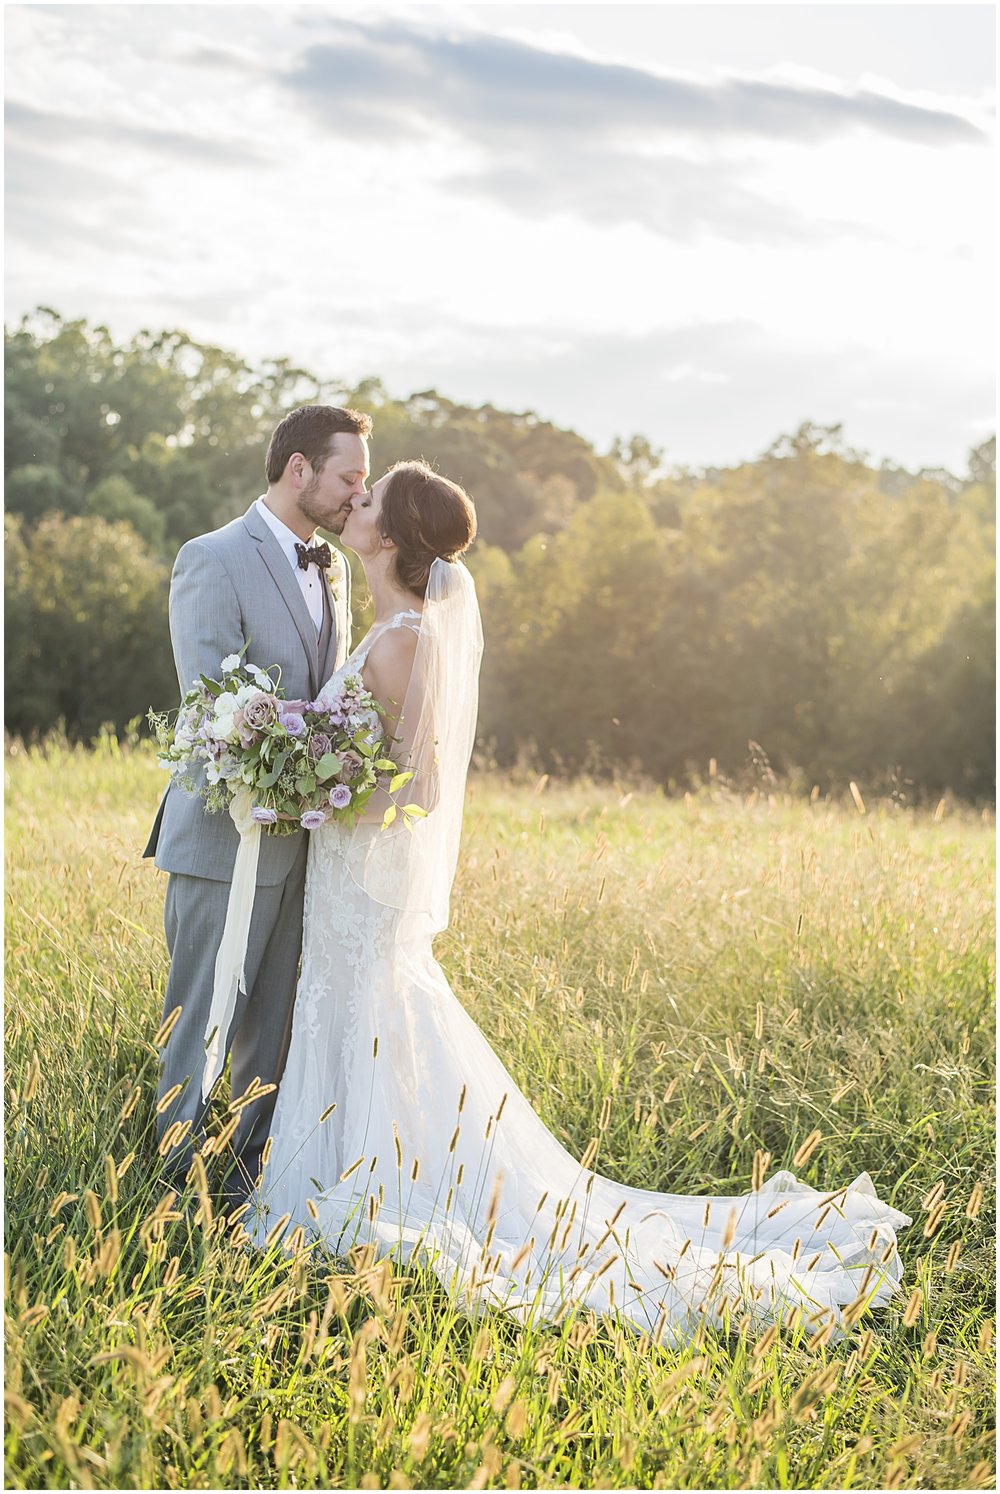 Real Wedding in Greenville, SC | Farm, Outdoor, Summer, Purple, Mauve, Gray, Greenery | Greenbrier Farms | Davey Morgan Photography | Bespoken Weddings & Events